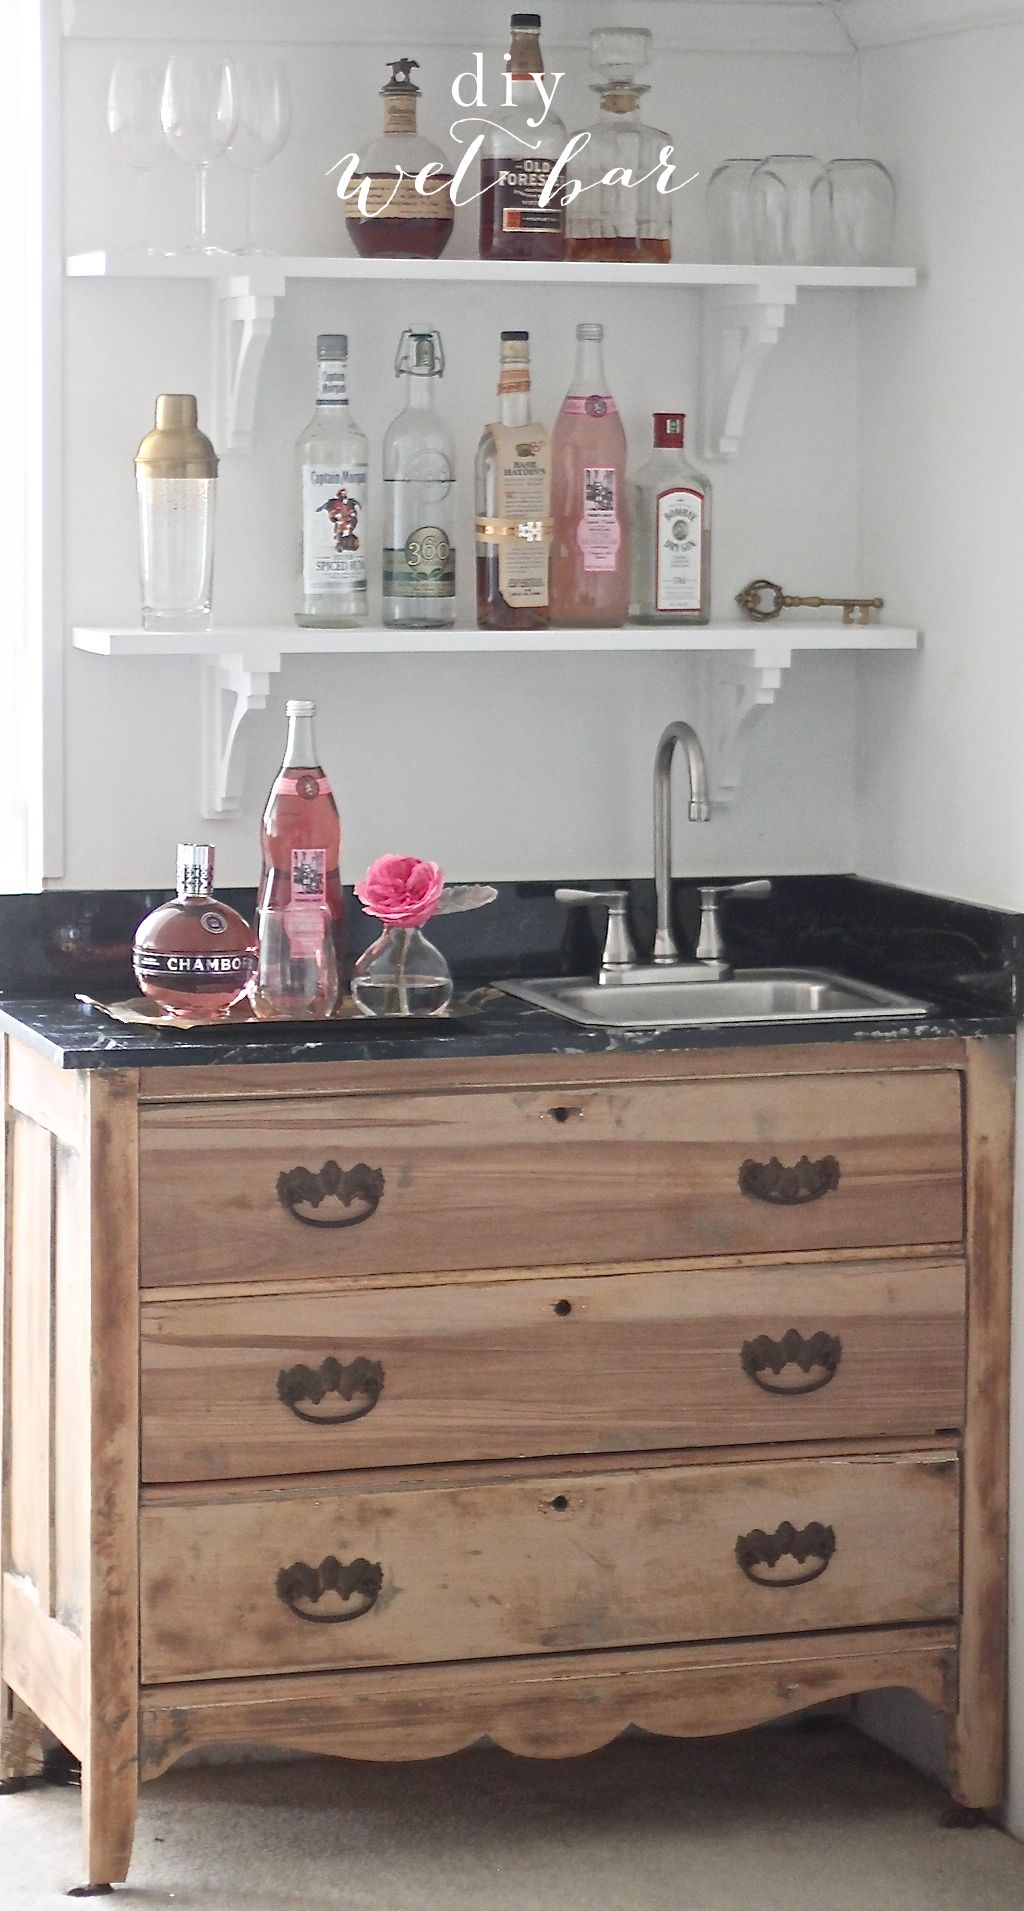 Easy Diy Wet Bar With Open Shelves Salvaged Wood Home Diy Bar